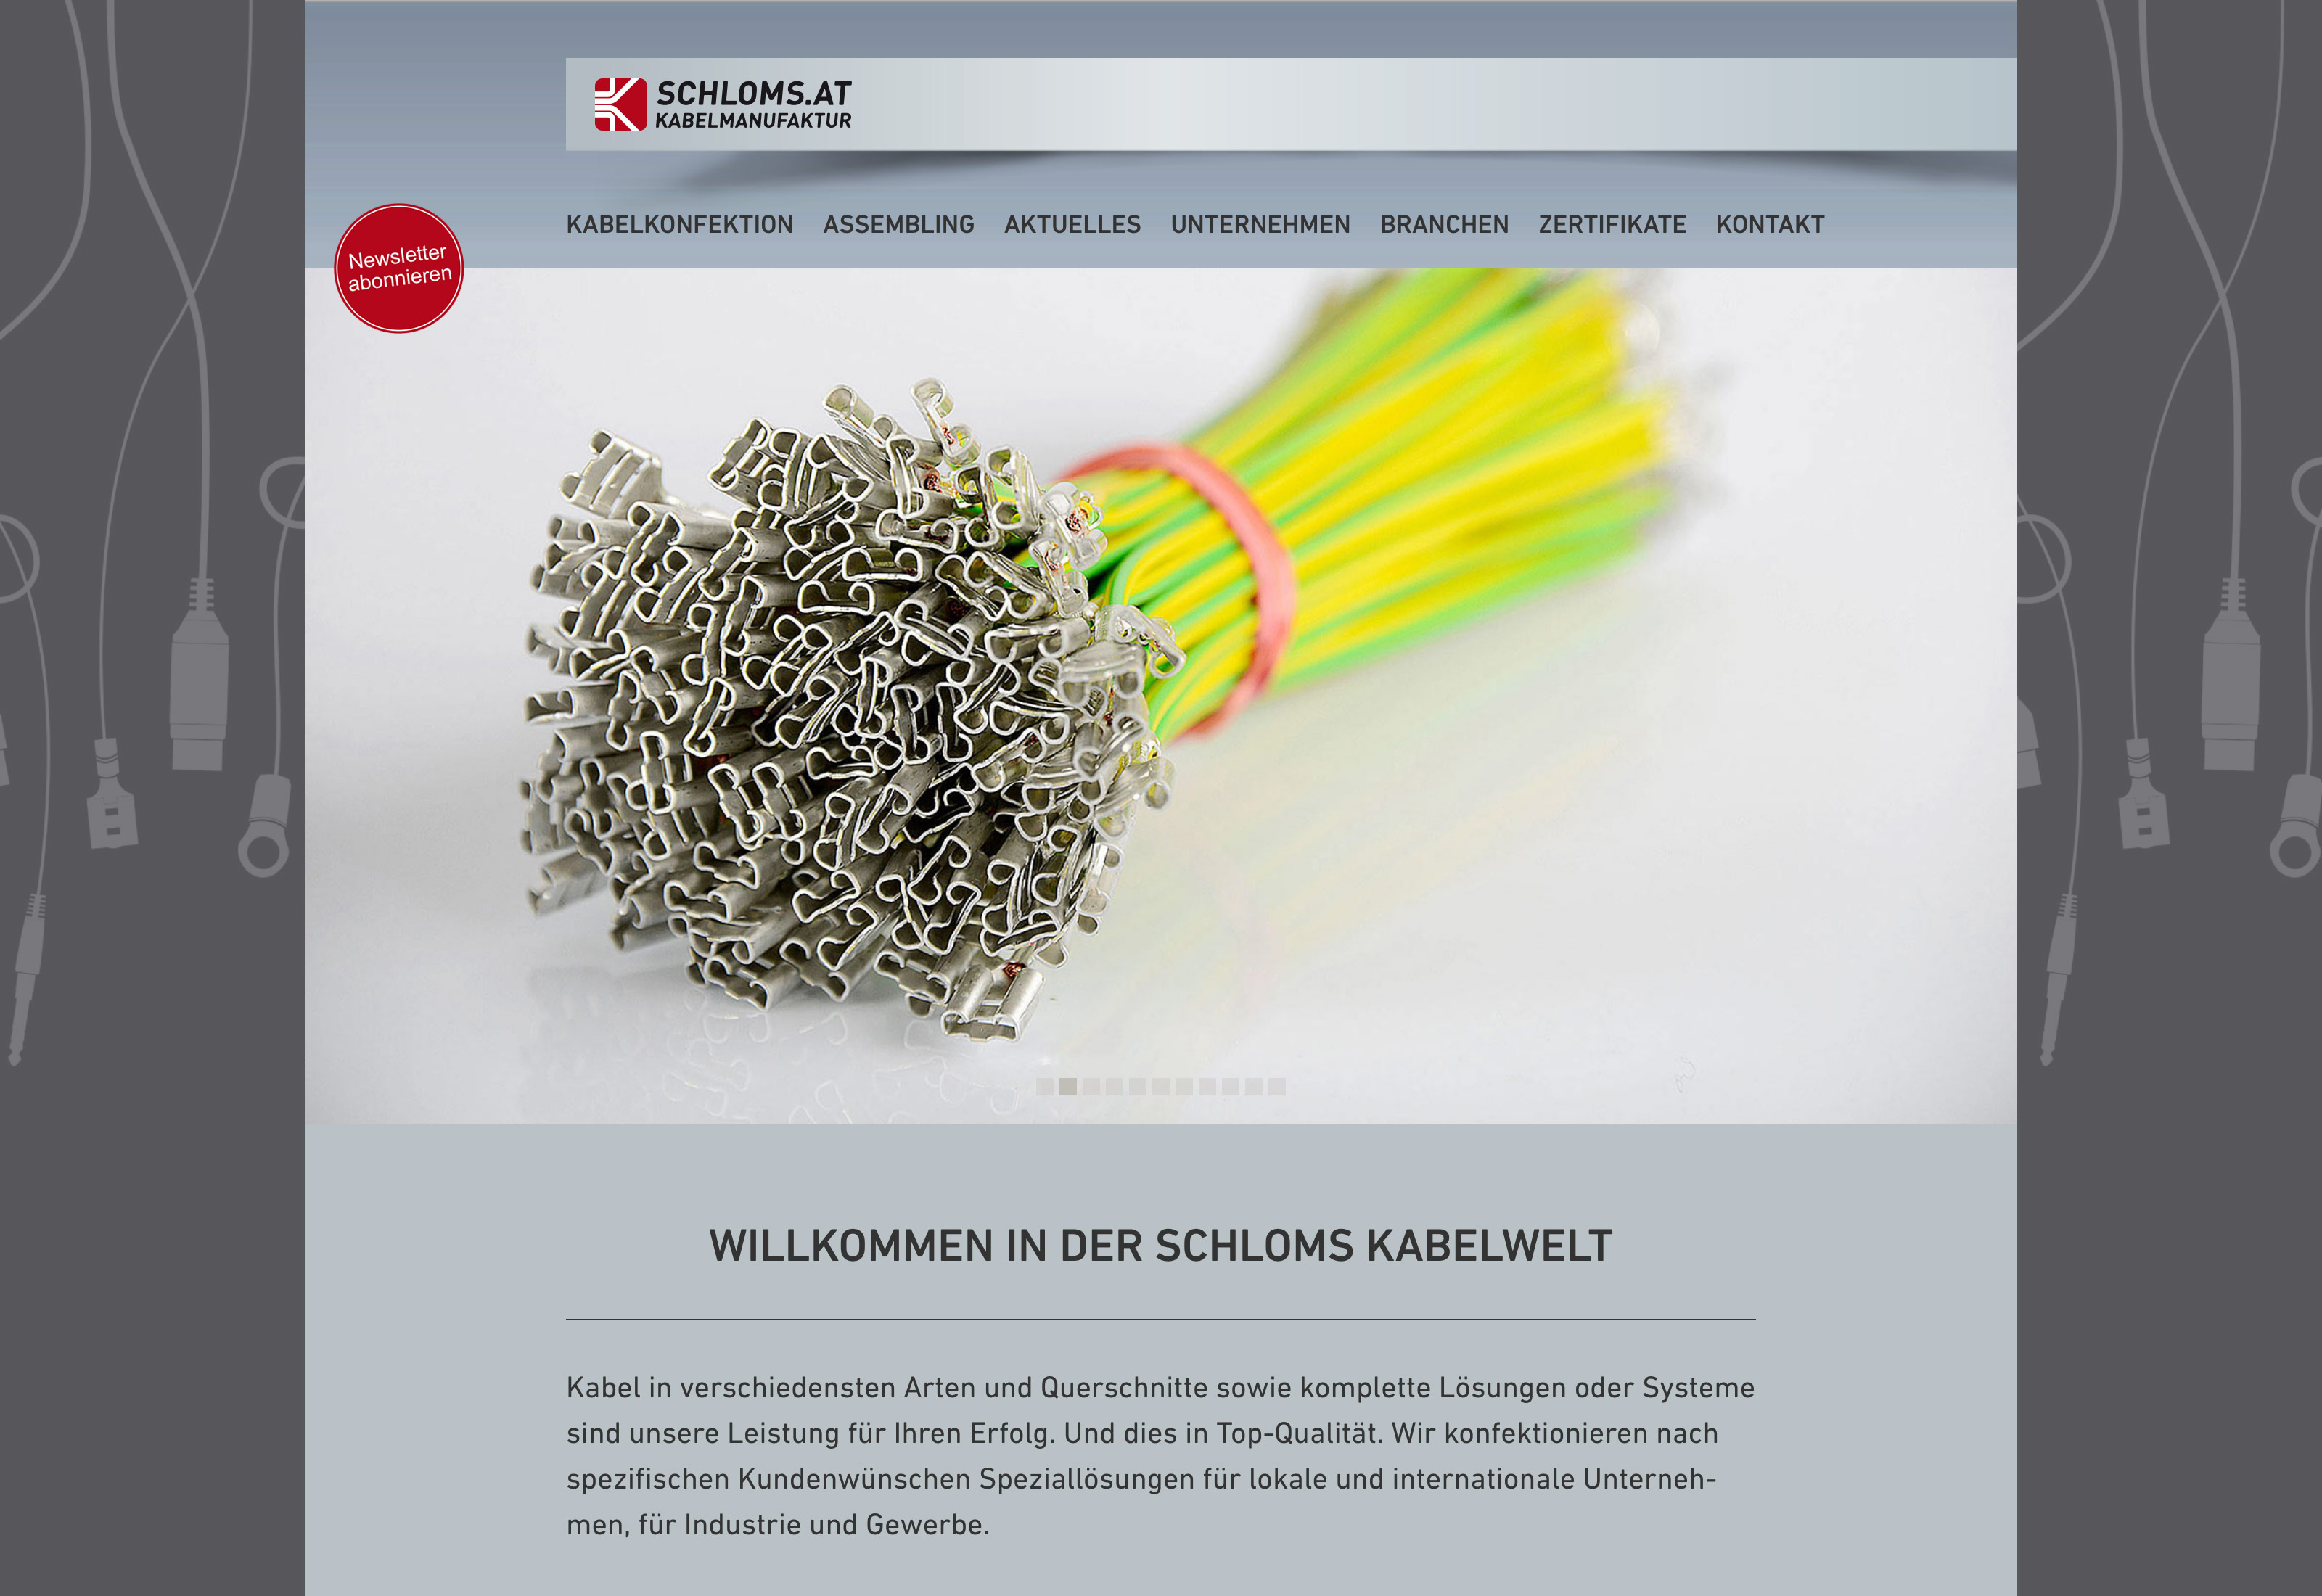 Website Schloms Kabelkonfektion